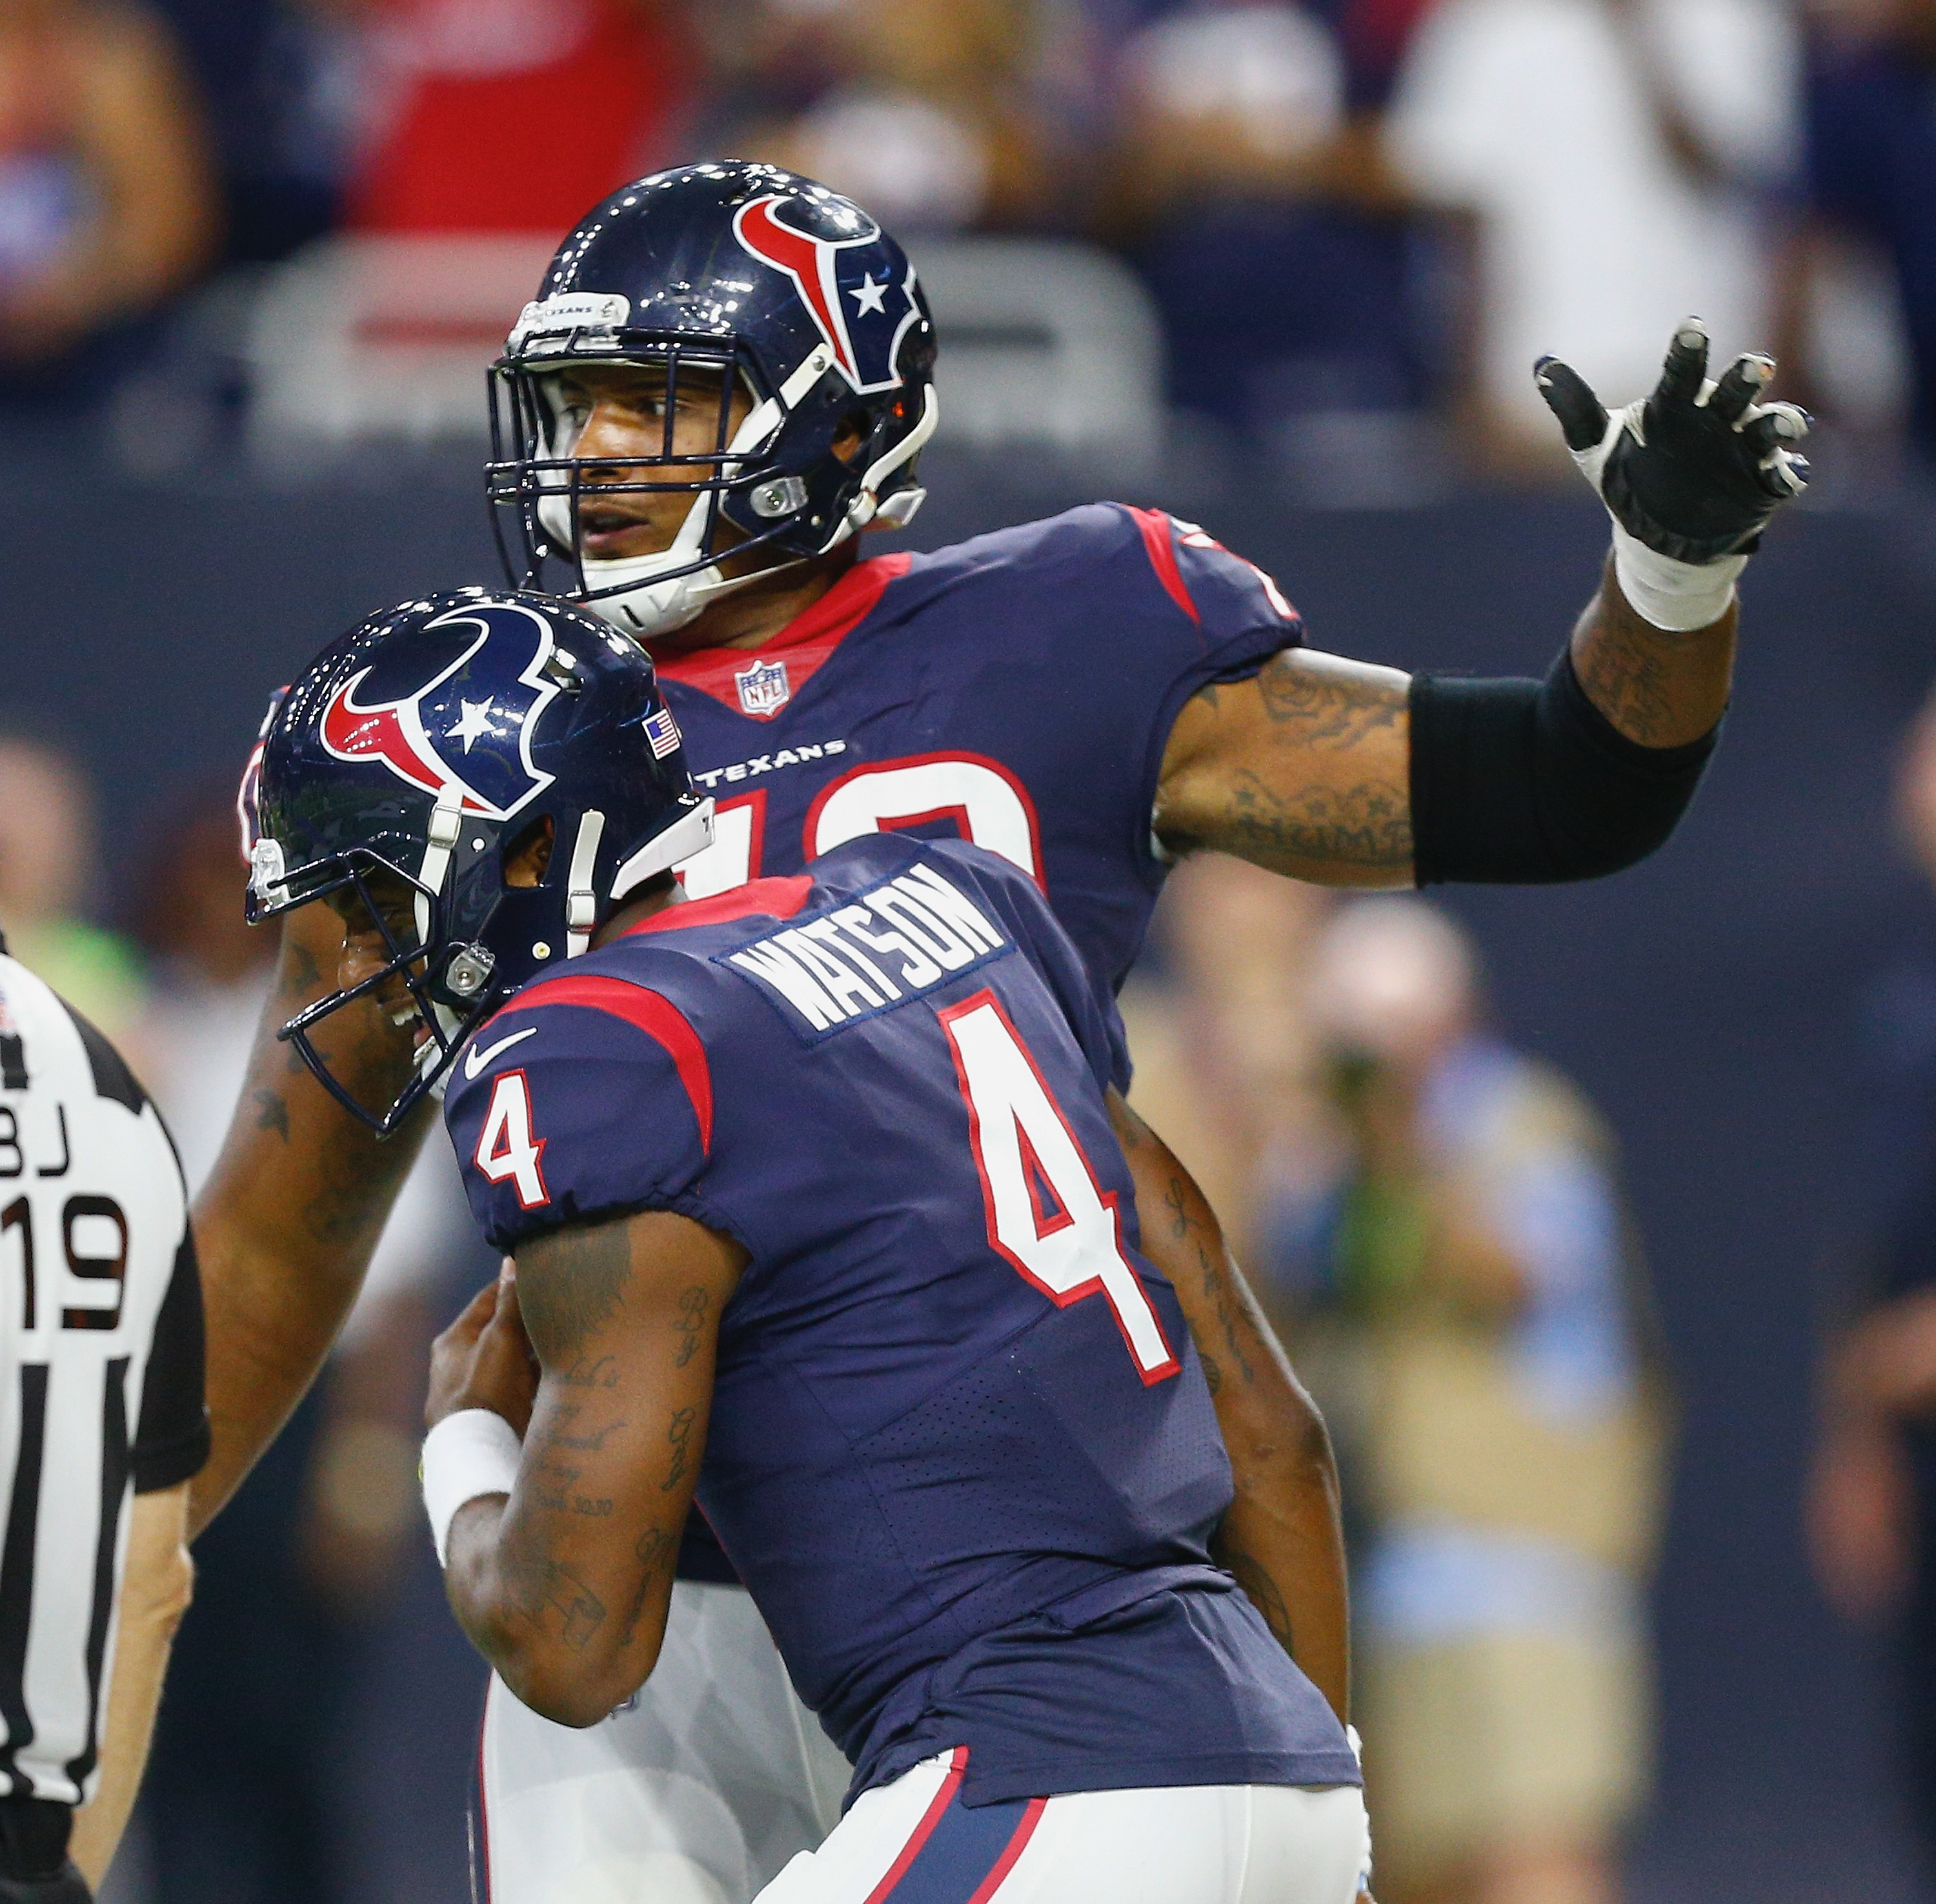 Nfl1000 Rookie Review From Week 9: Battle Red Blog